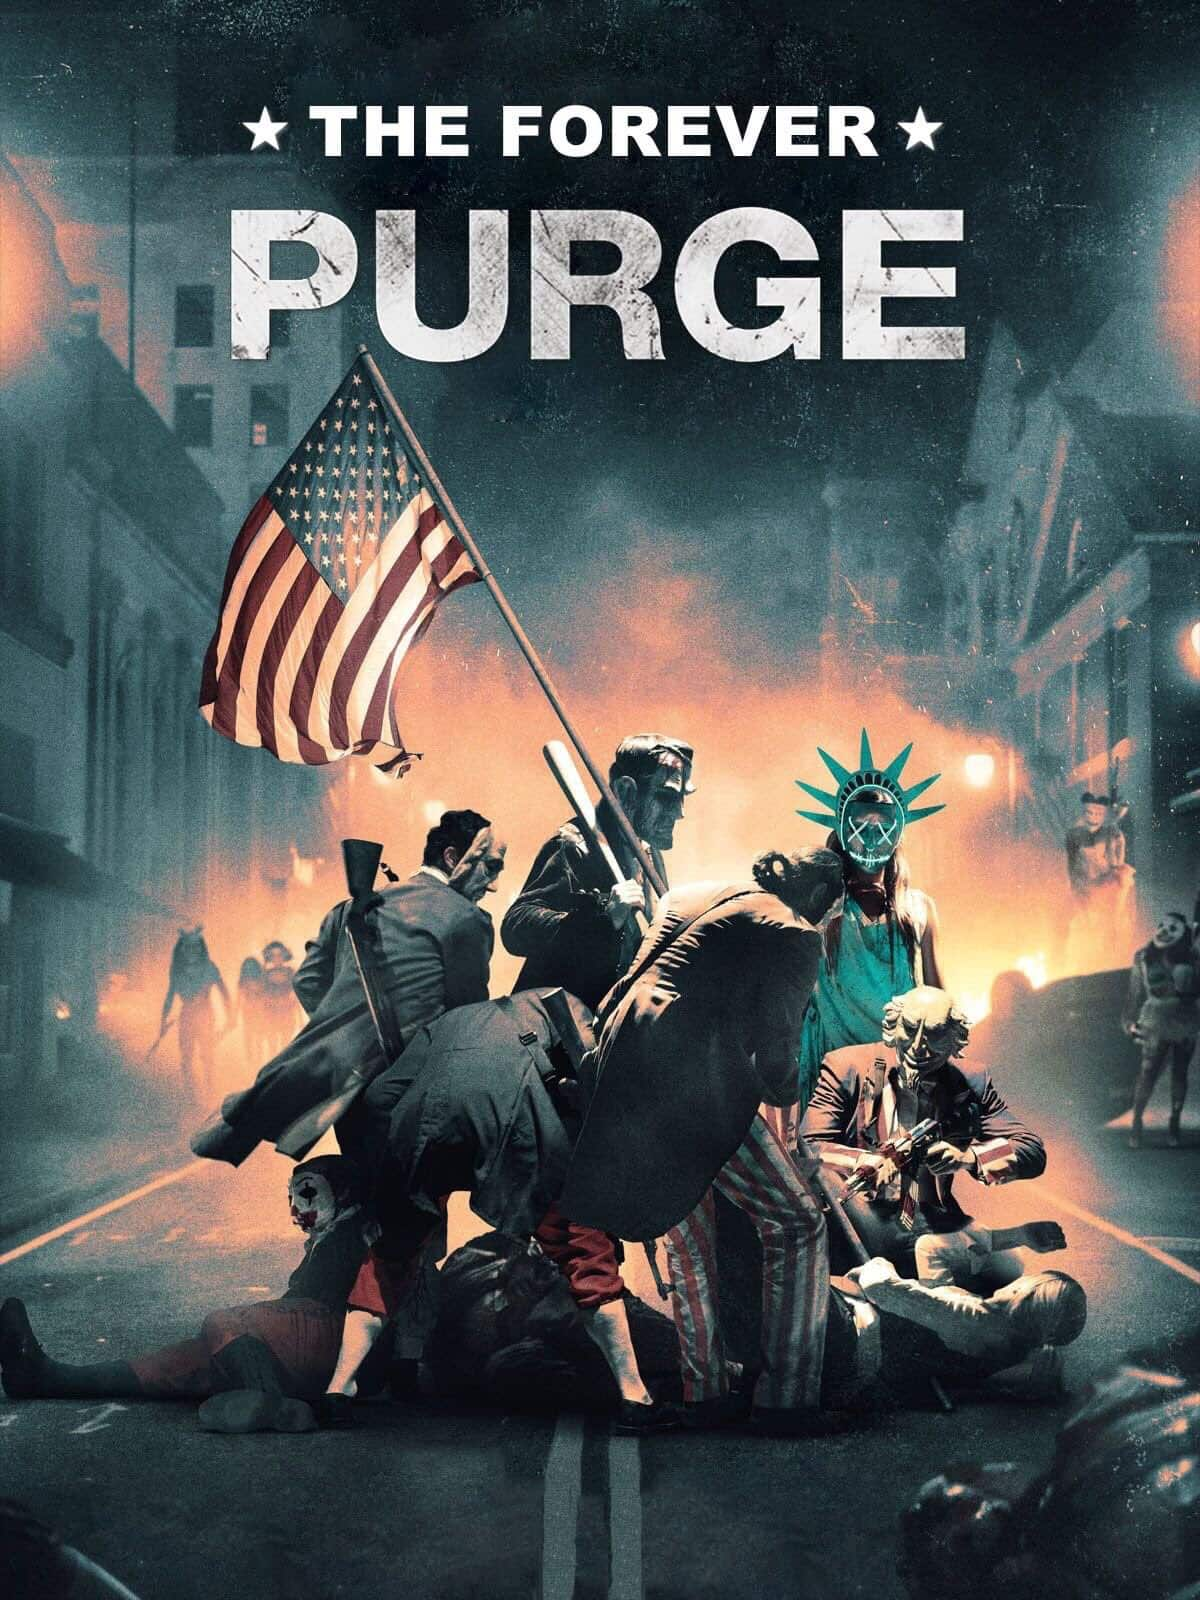 poster phim viễn tưởng The Forever Purge.